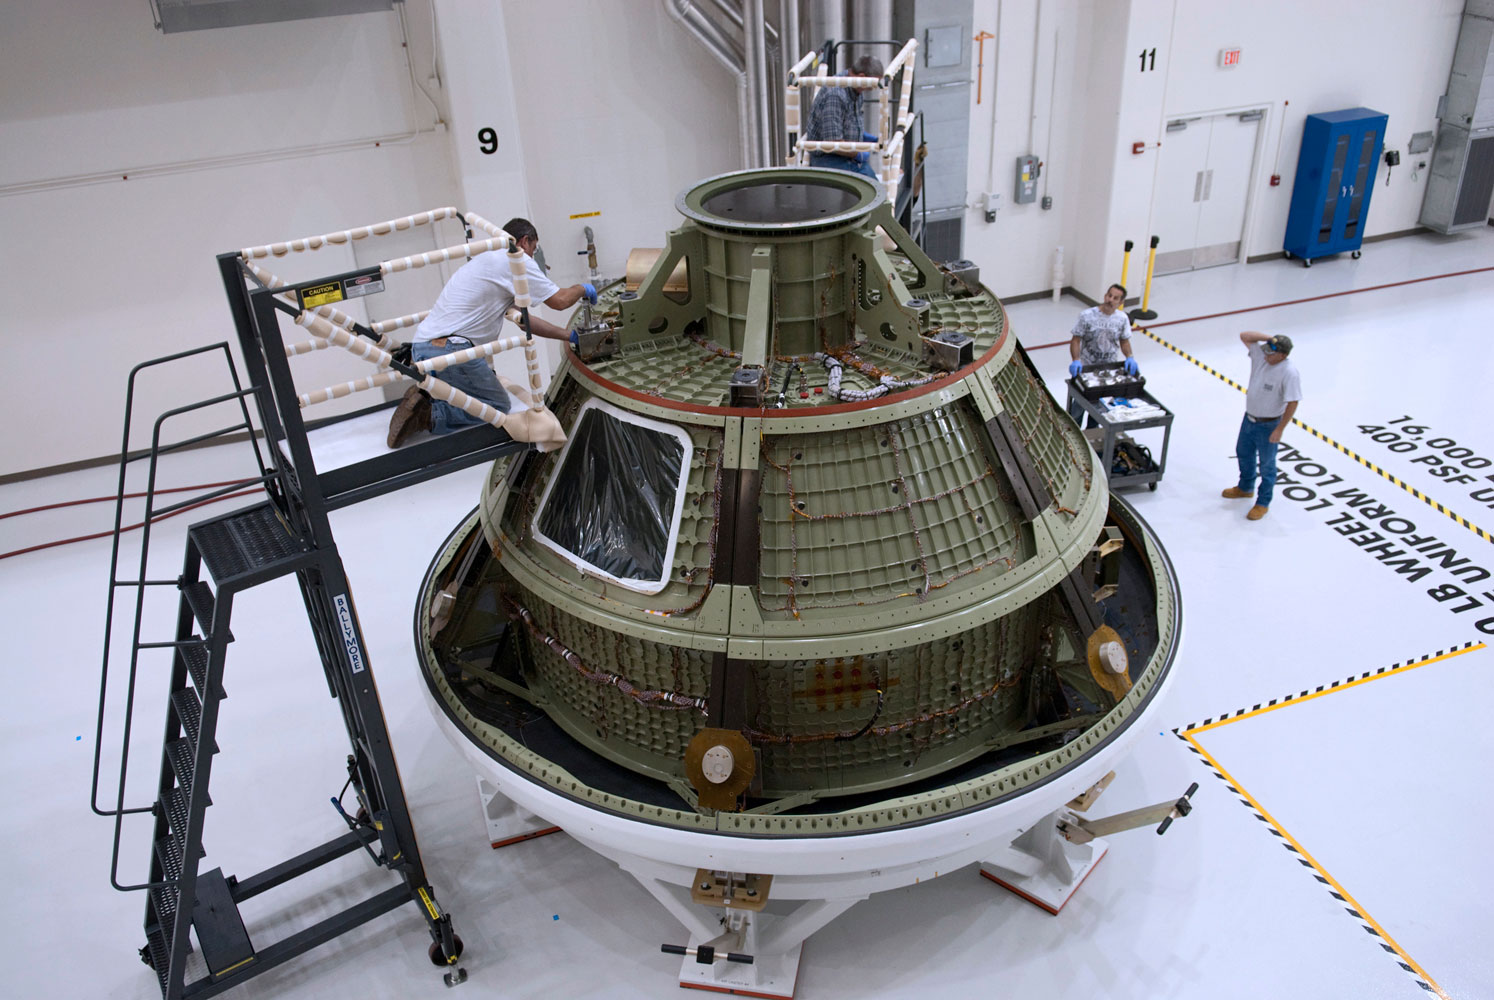 A test version of Orion arrived at the Kennedy Space Center on April 21, 2012. This model will be used for ground operations practice in advance of the first test flight.